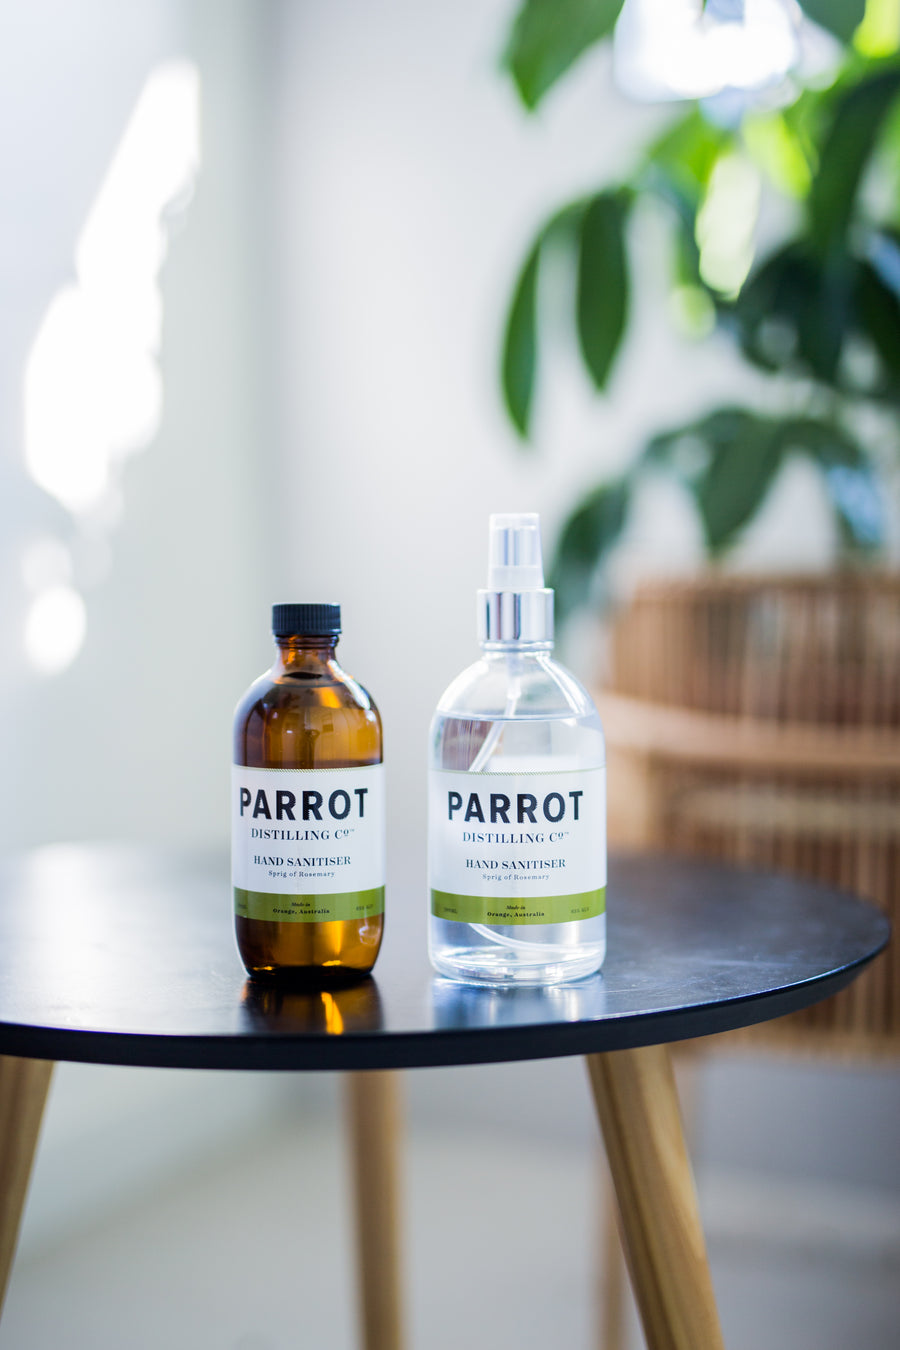 Parrot Distilling Co. Hand Sanitiser Spray